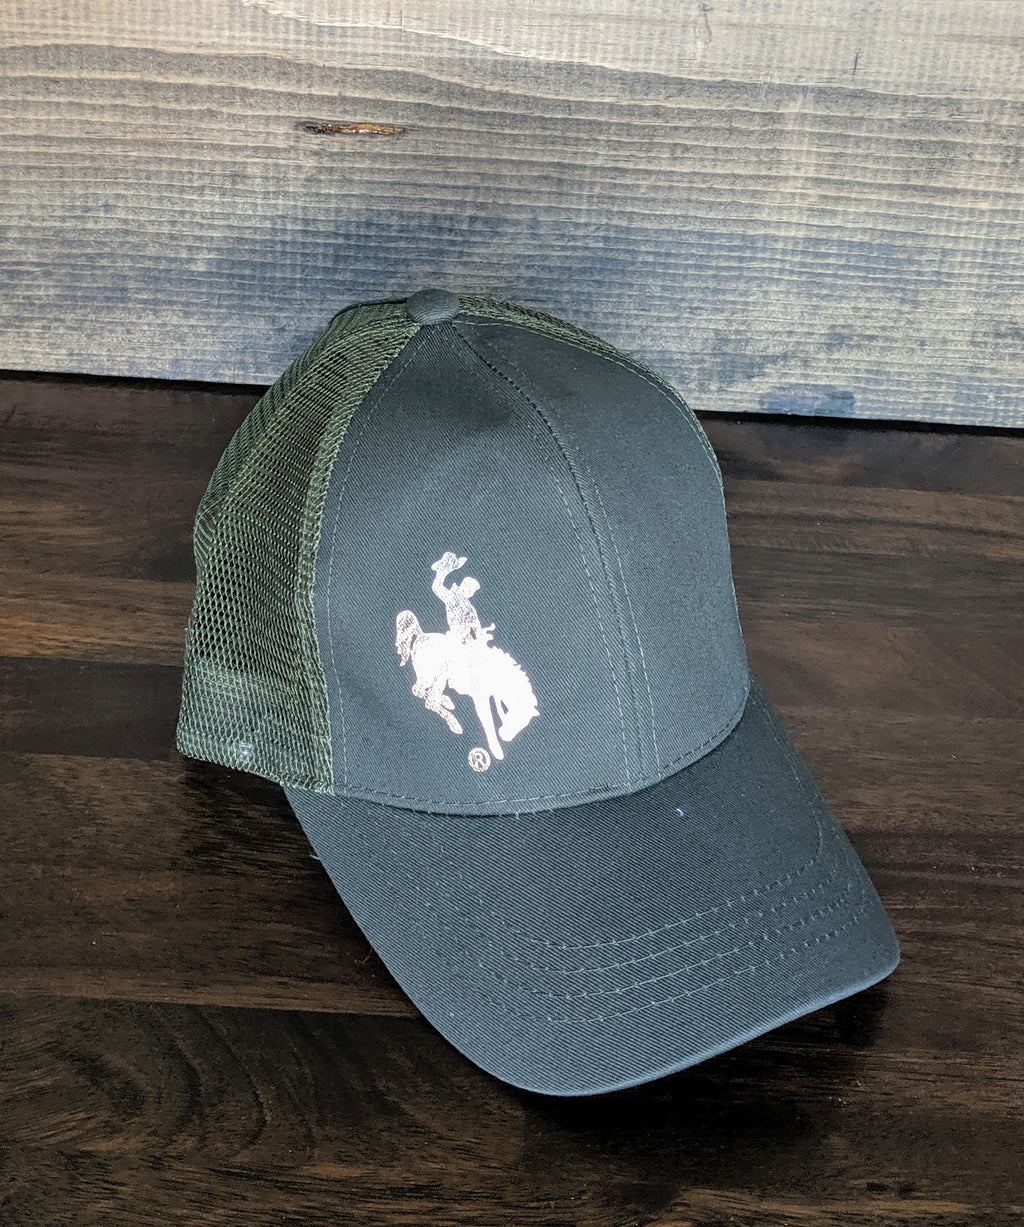 High pony hat with rose gold Wyoming Steamboat